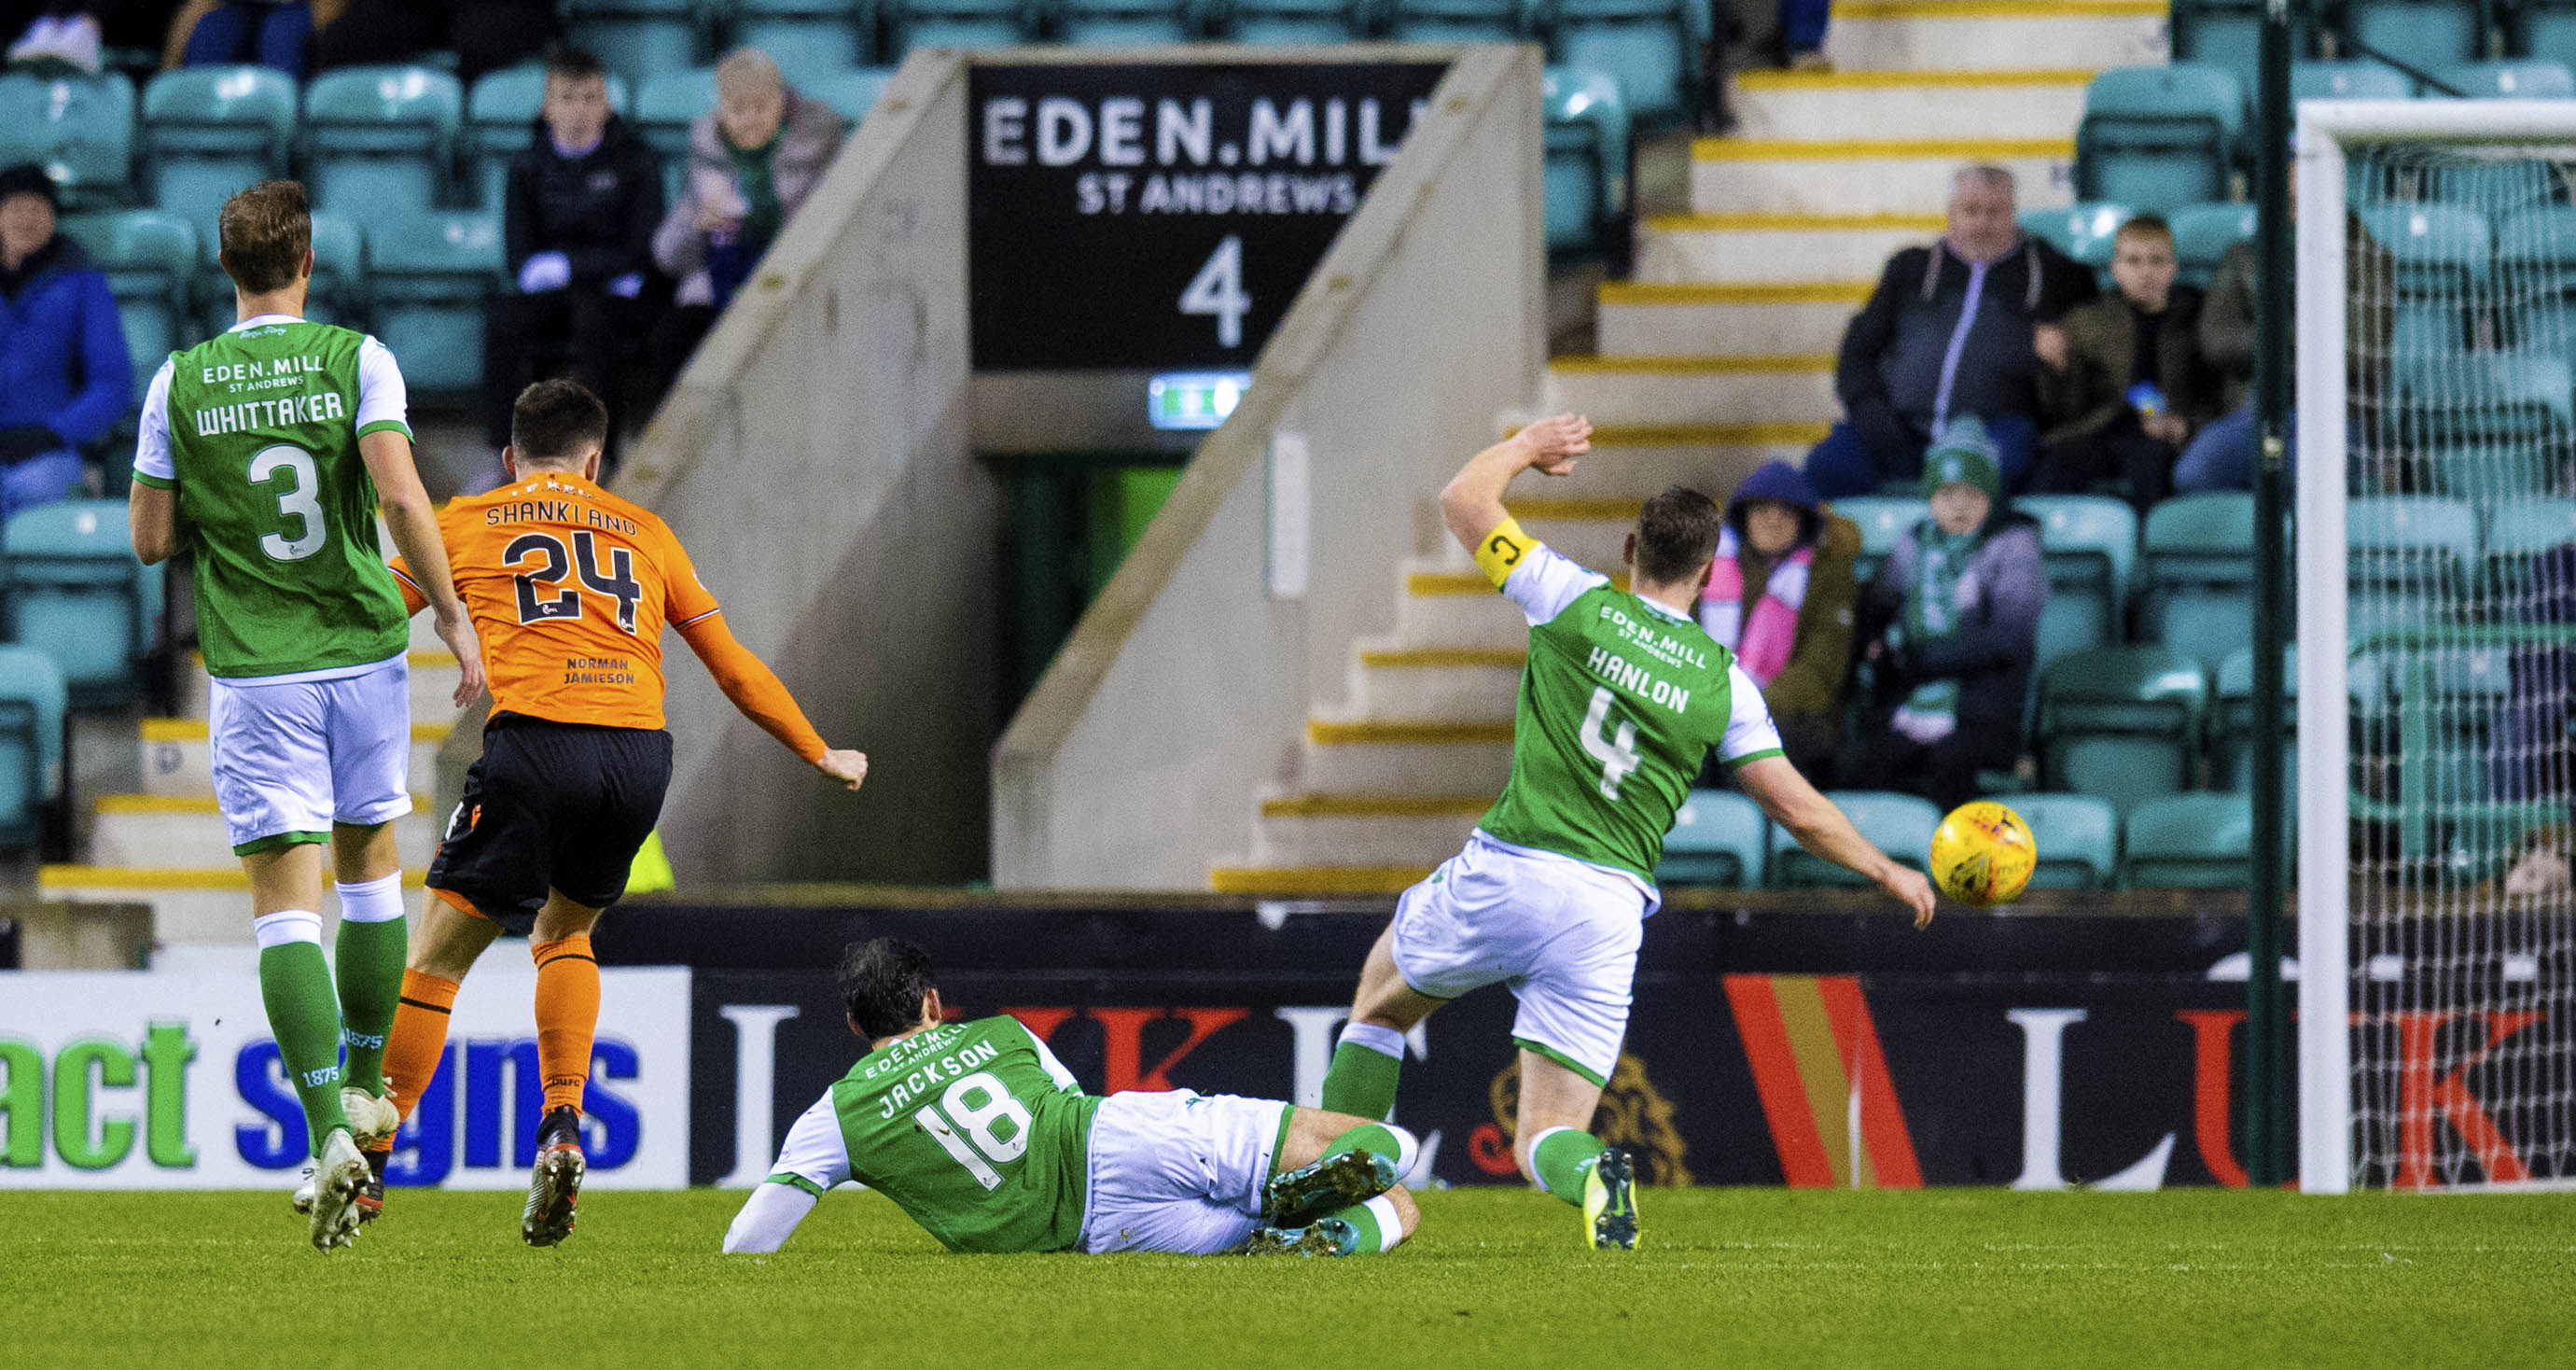 Lawrence Shankland scores to make it 1-0 against Hibs.